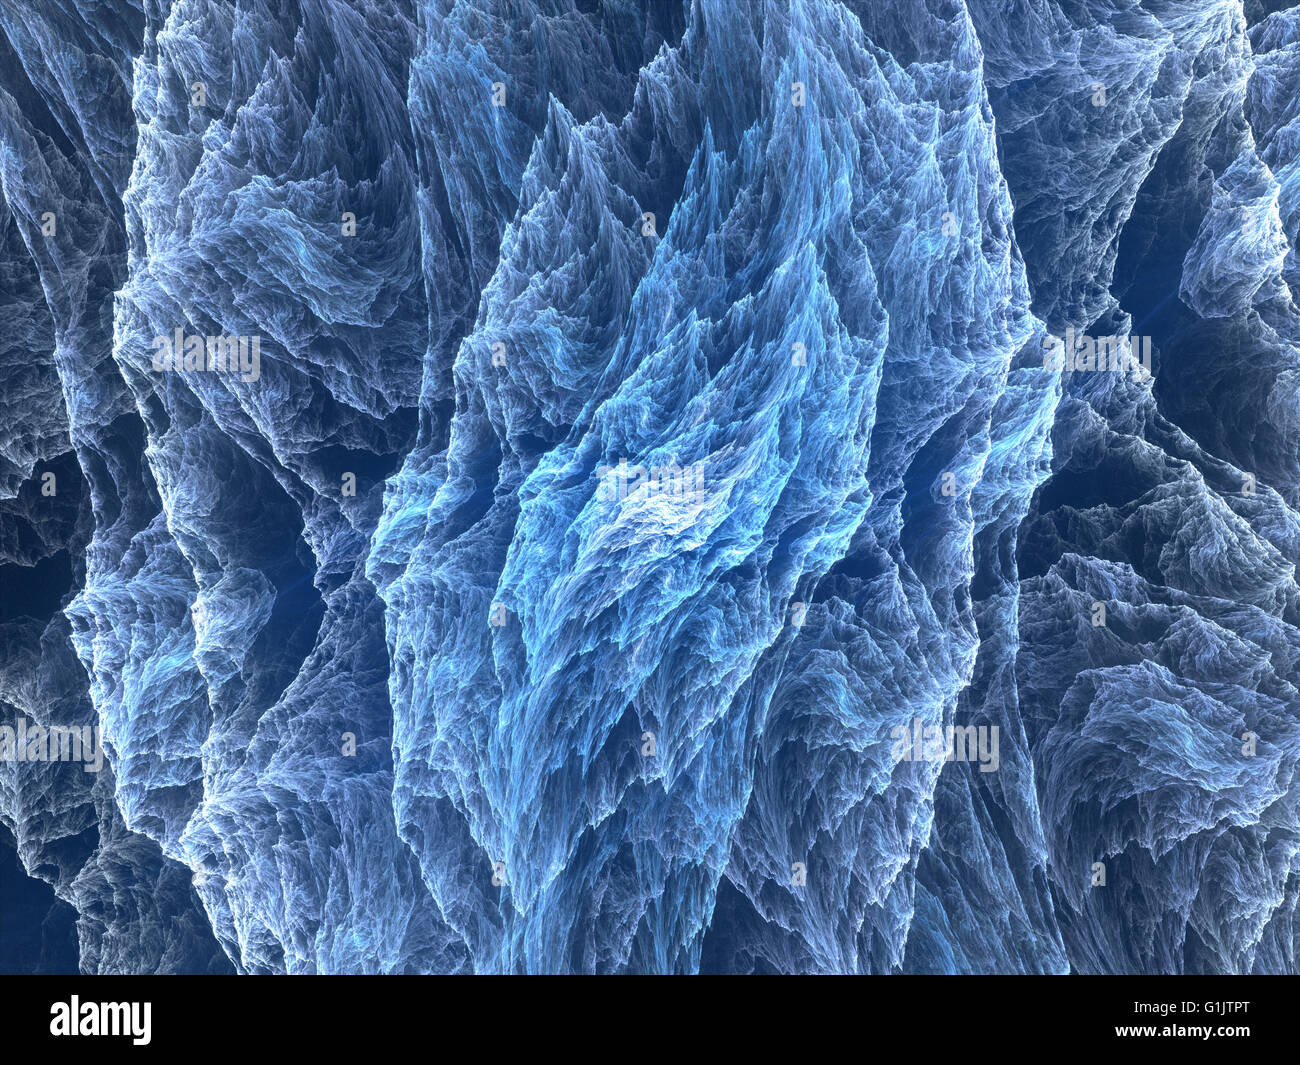 Blue glowing microscopic world, computer generated abstract background - Stock Image